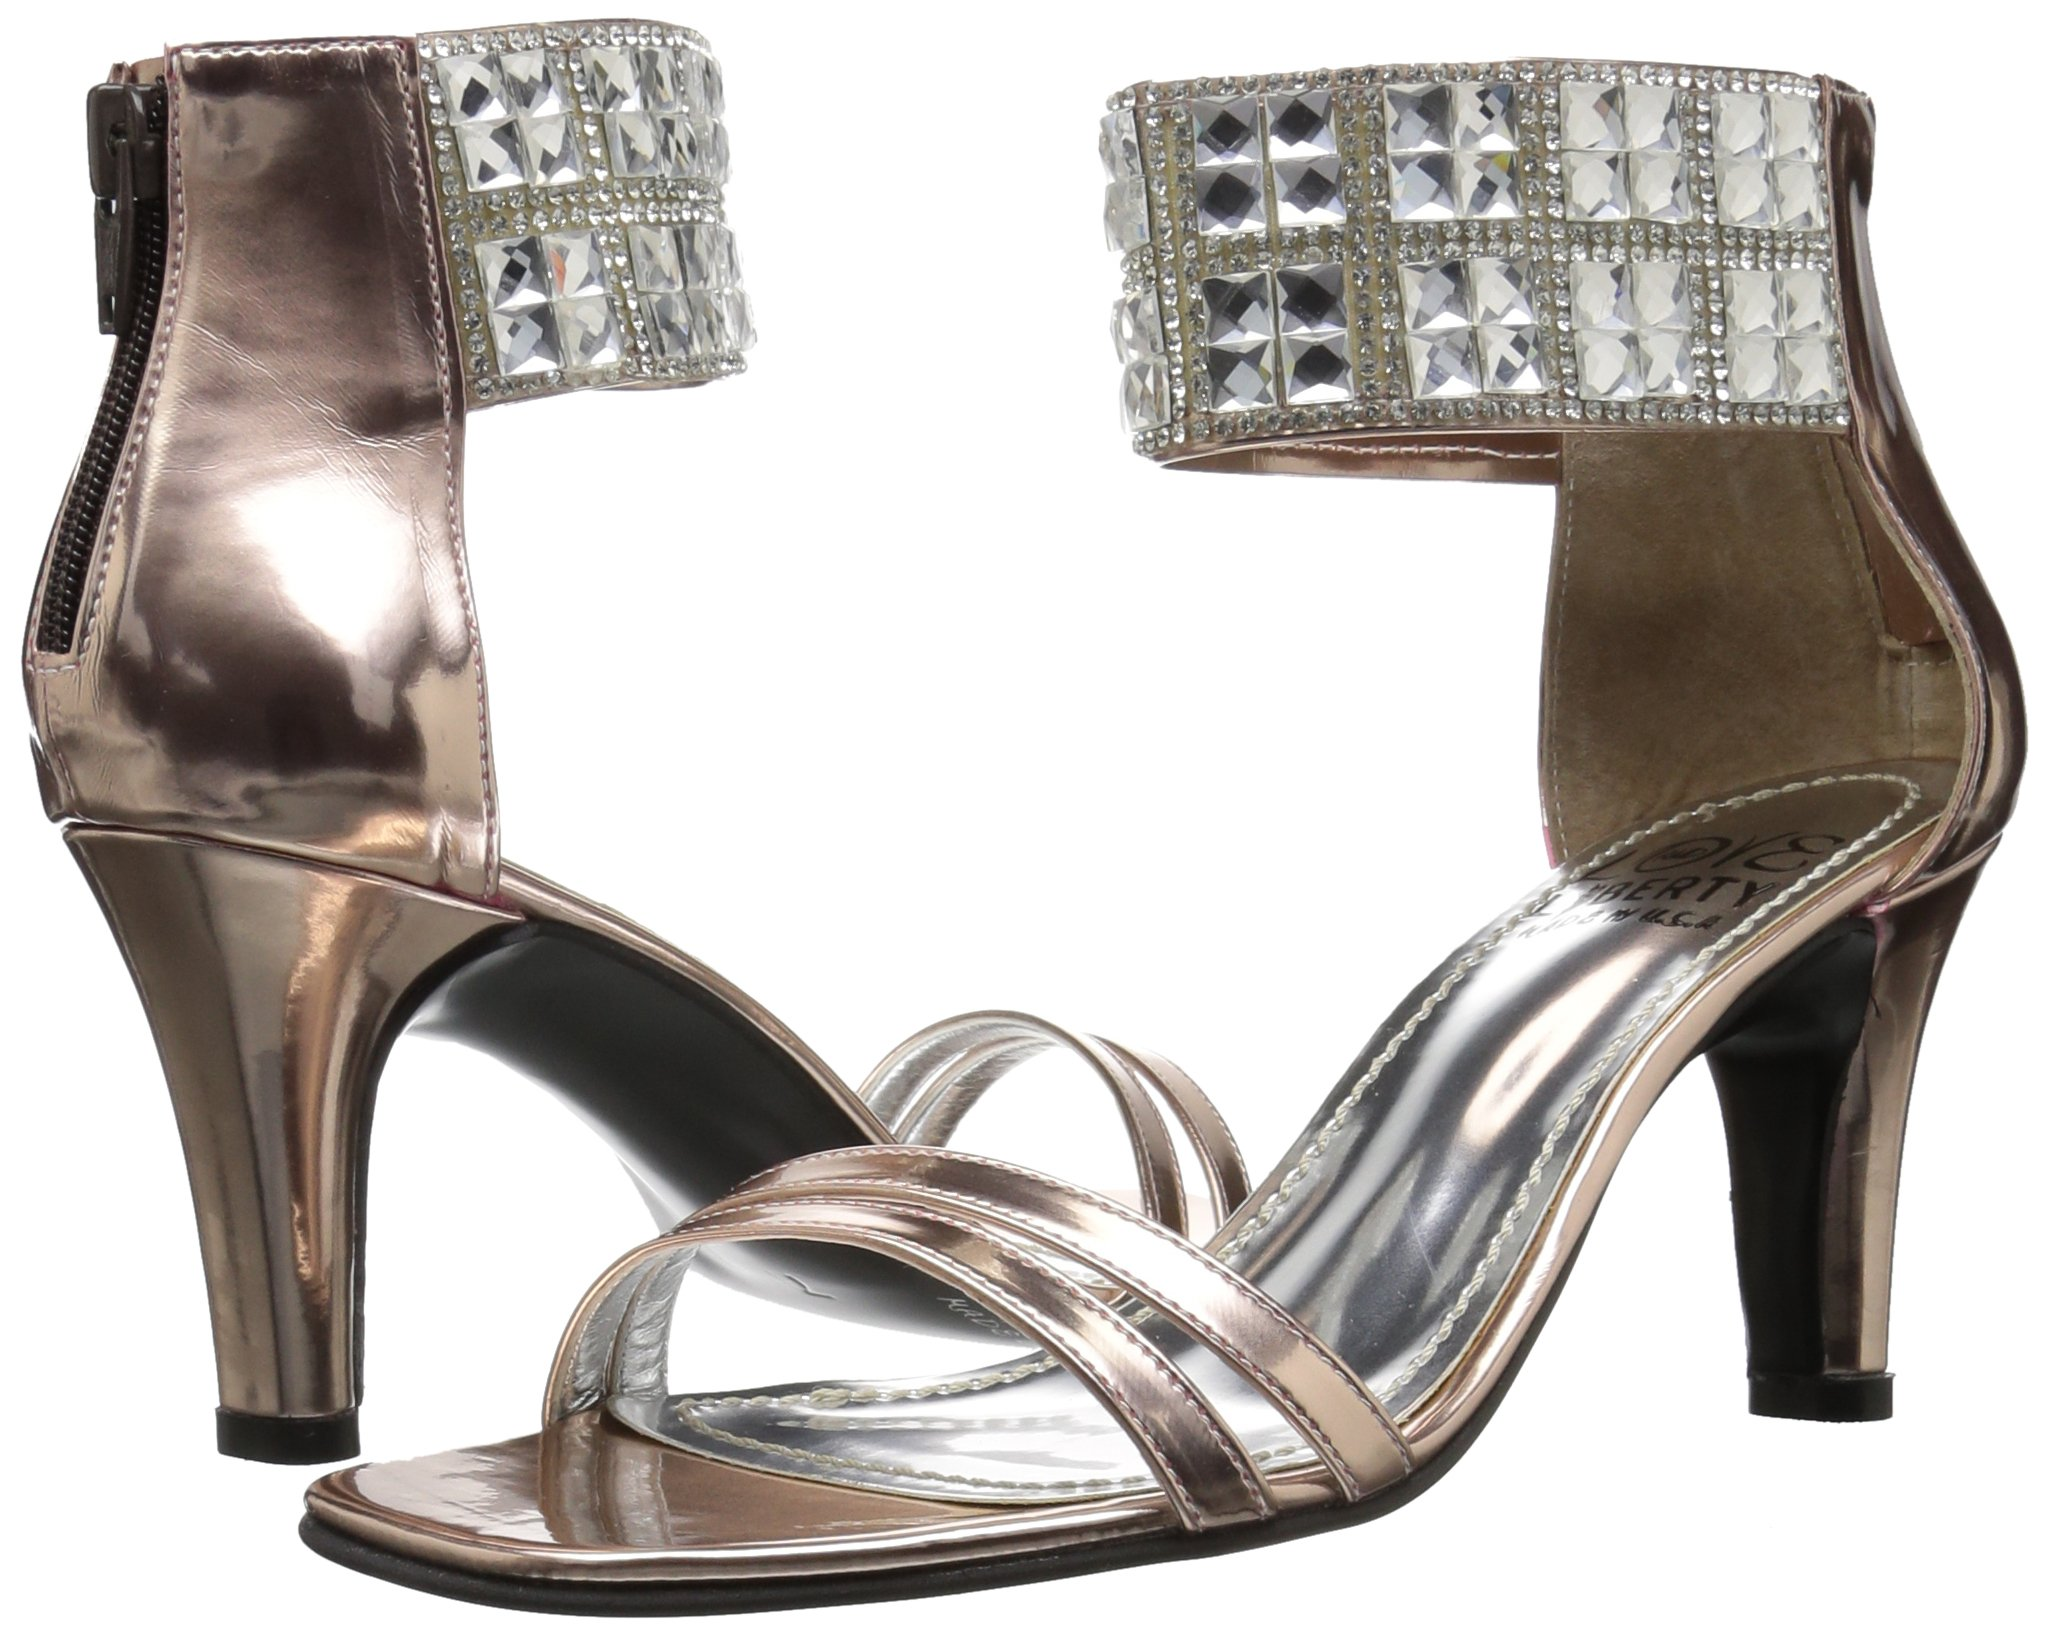 Love & Liberty Women's Scarlett-Ll Dress Sandal, Rose Gold, 9 M US by Love & Liberty (Image #6)